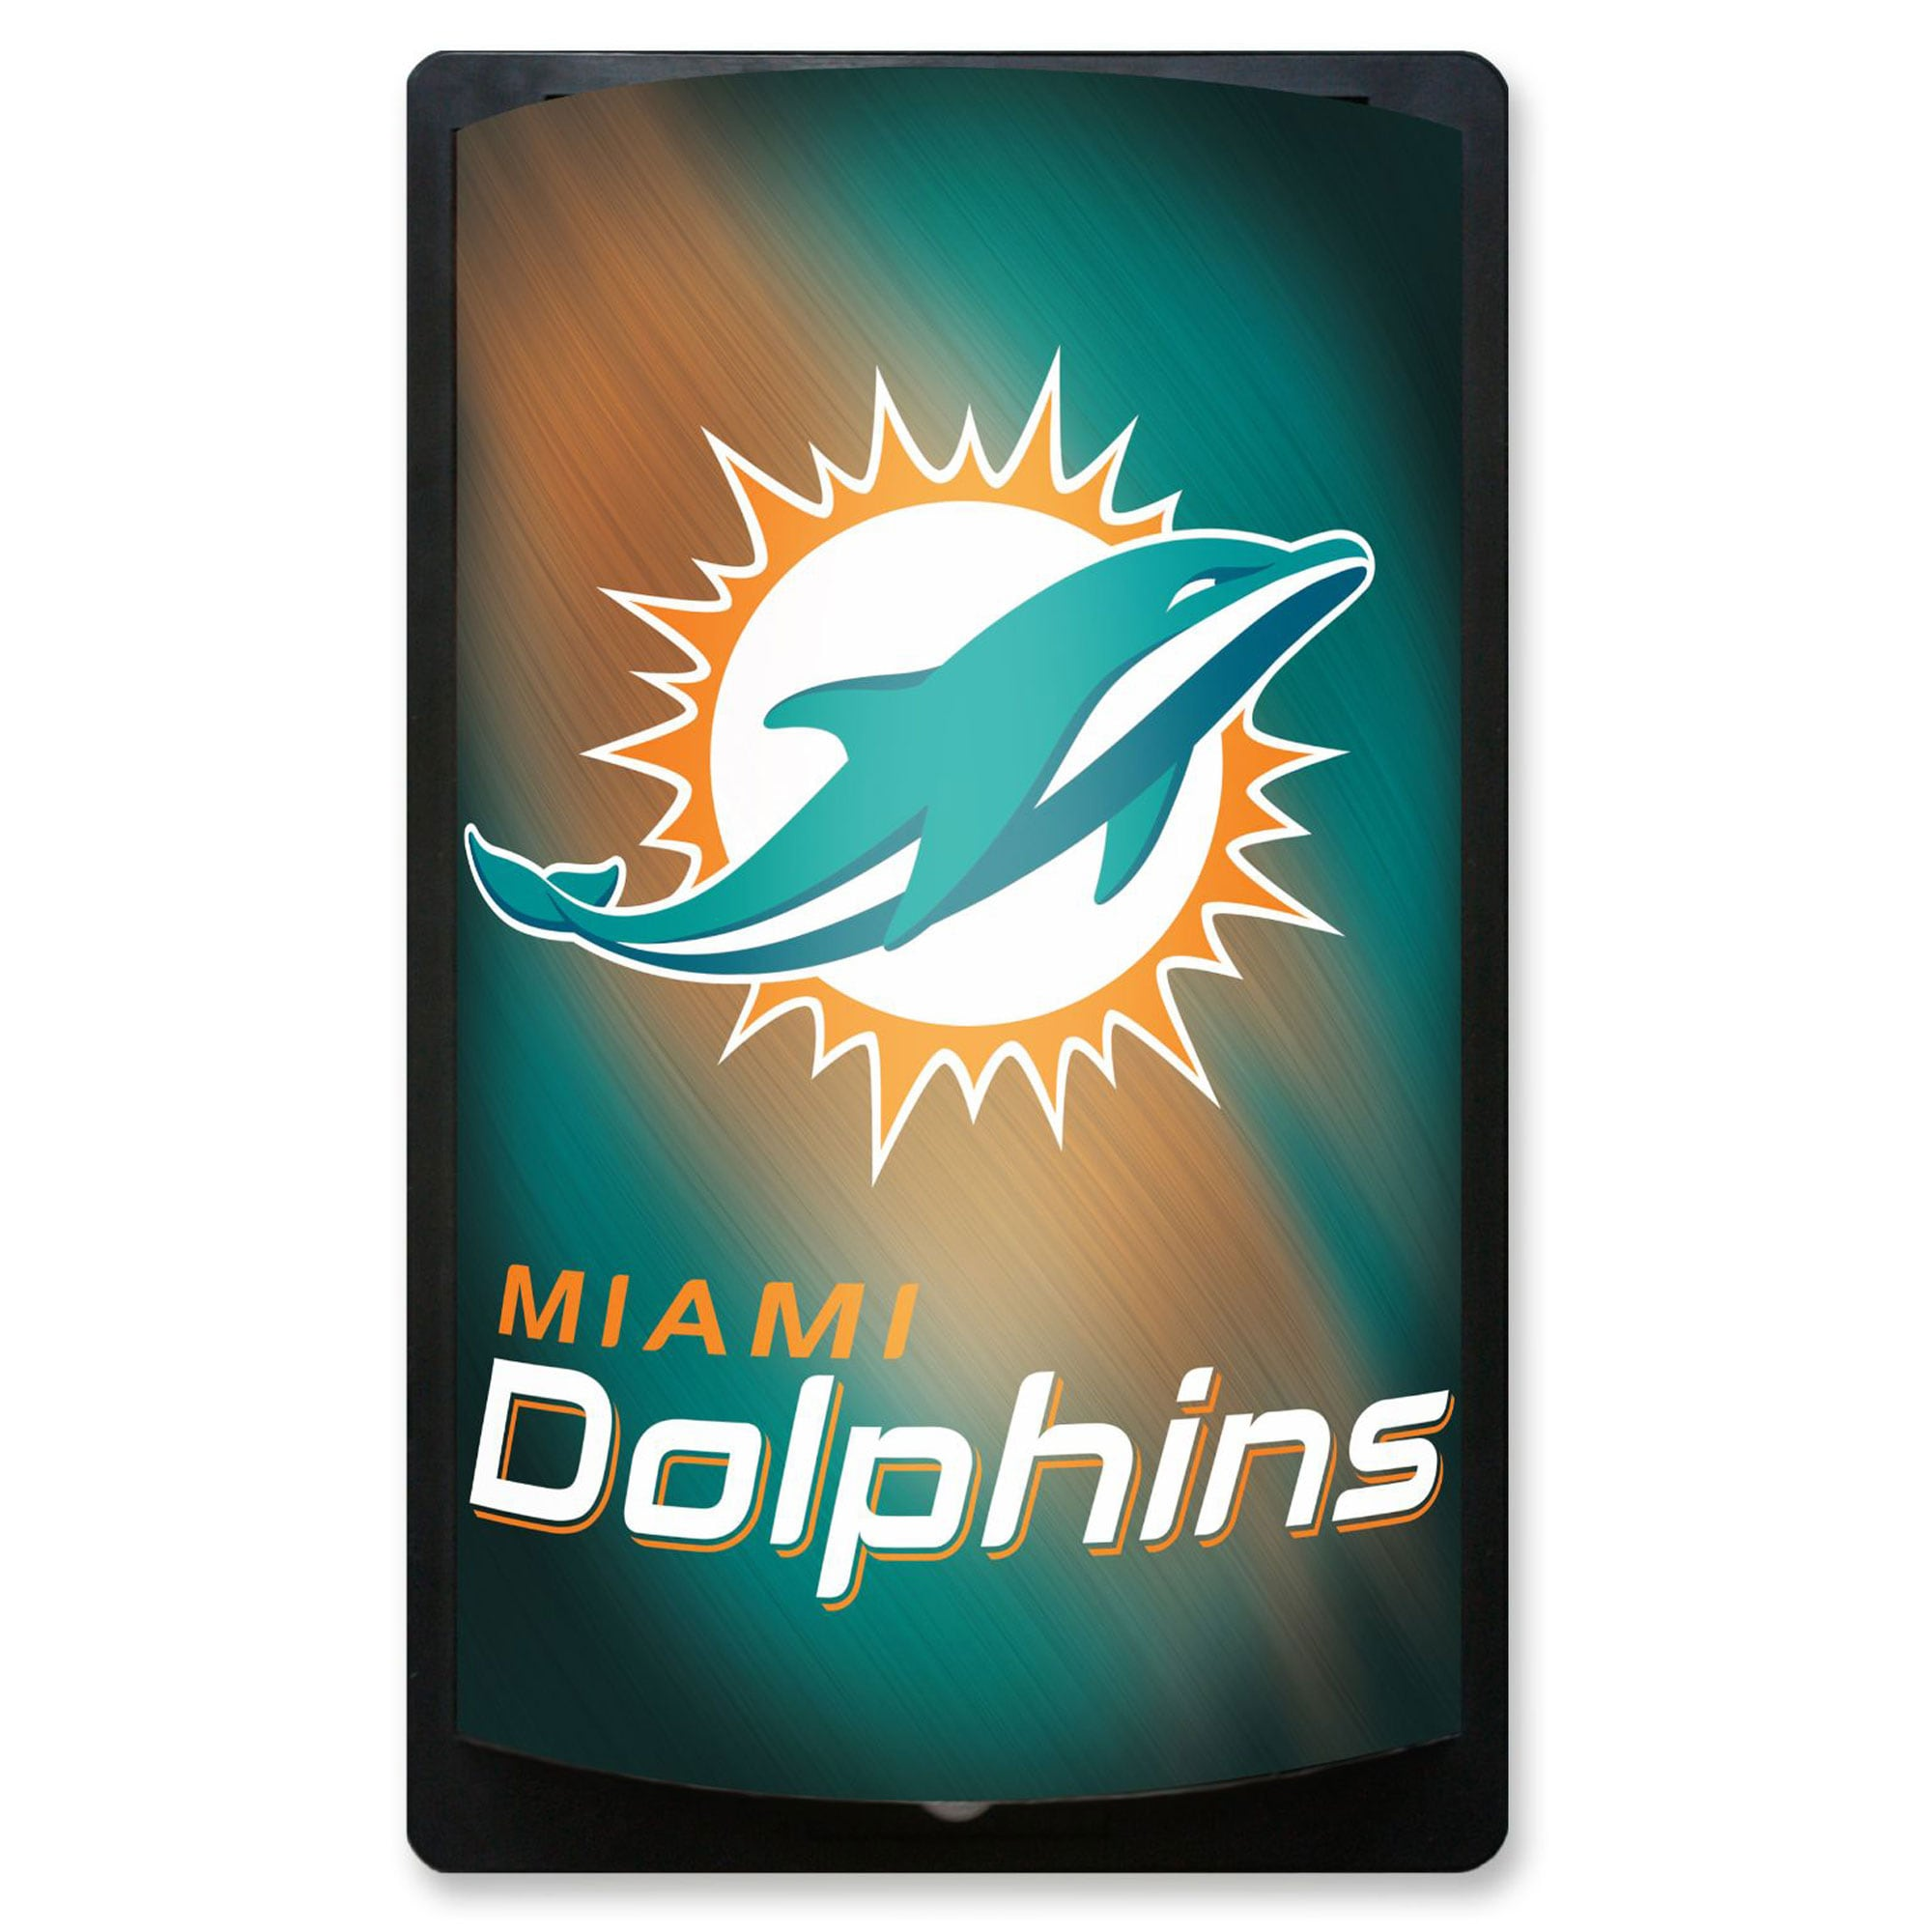 Miami Dolphins 12.5'' x 7.5'' MotiGlow Sign